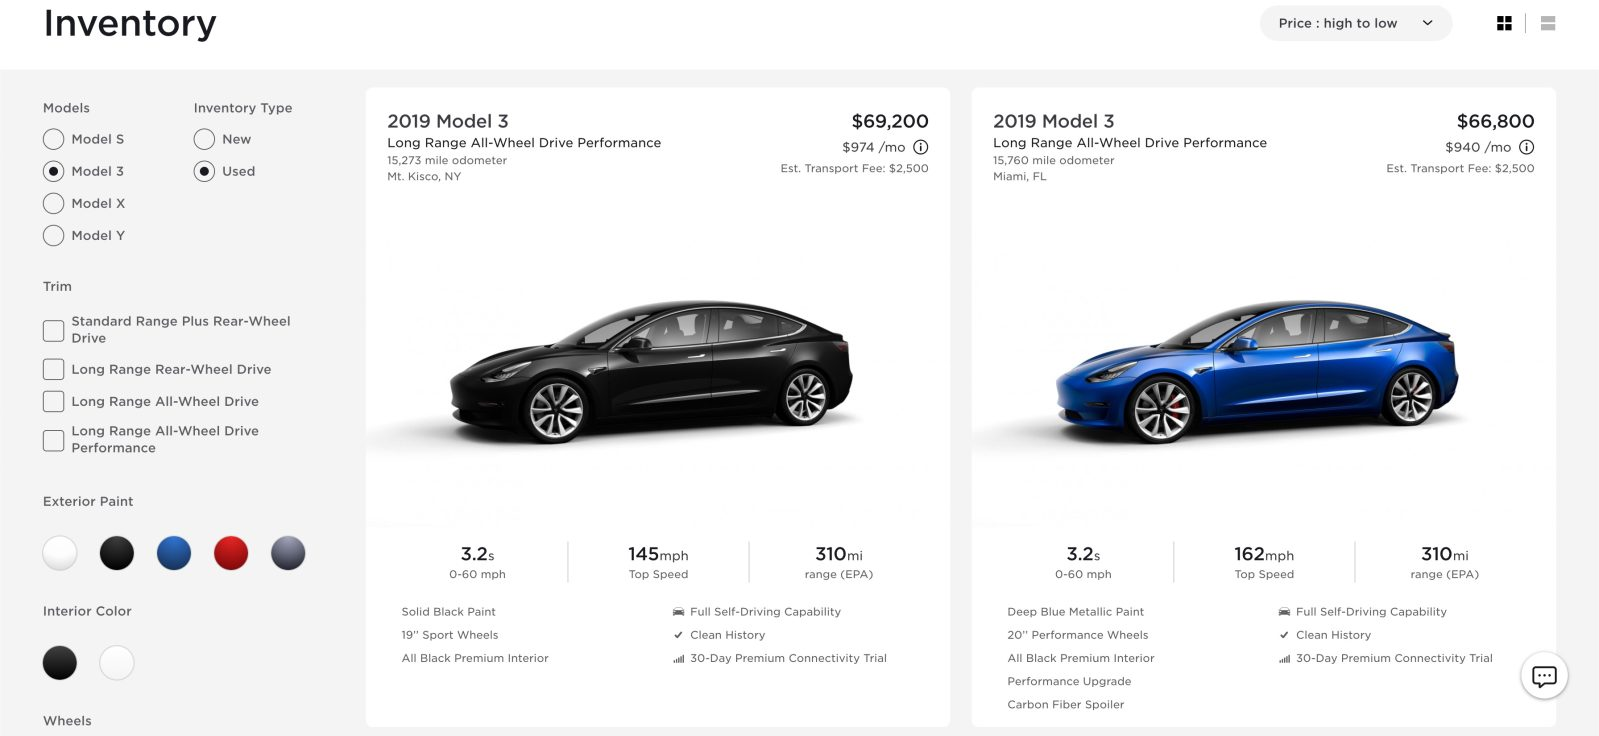 Tesla Model 3 is now the quickest-selling used car and sometimes even sells for higher price than new